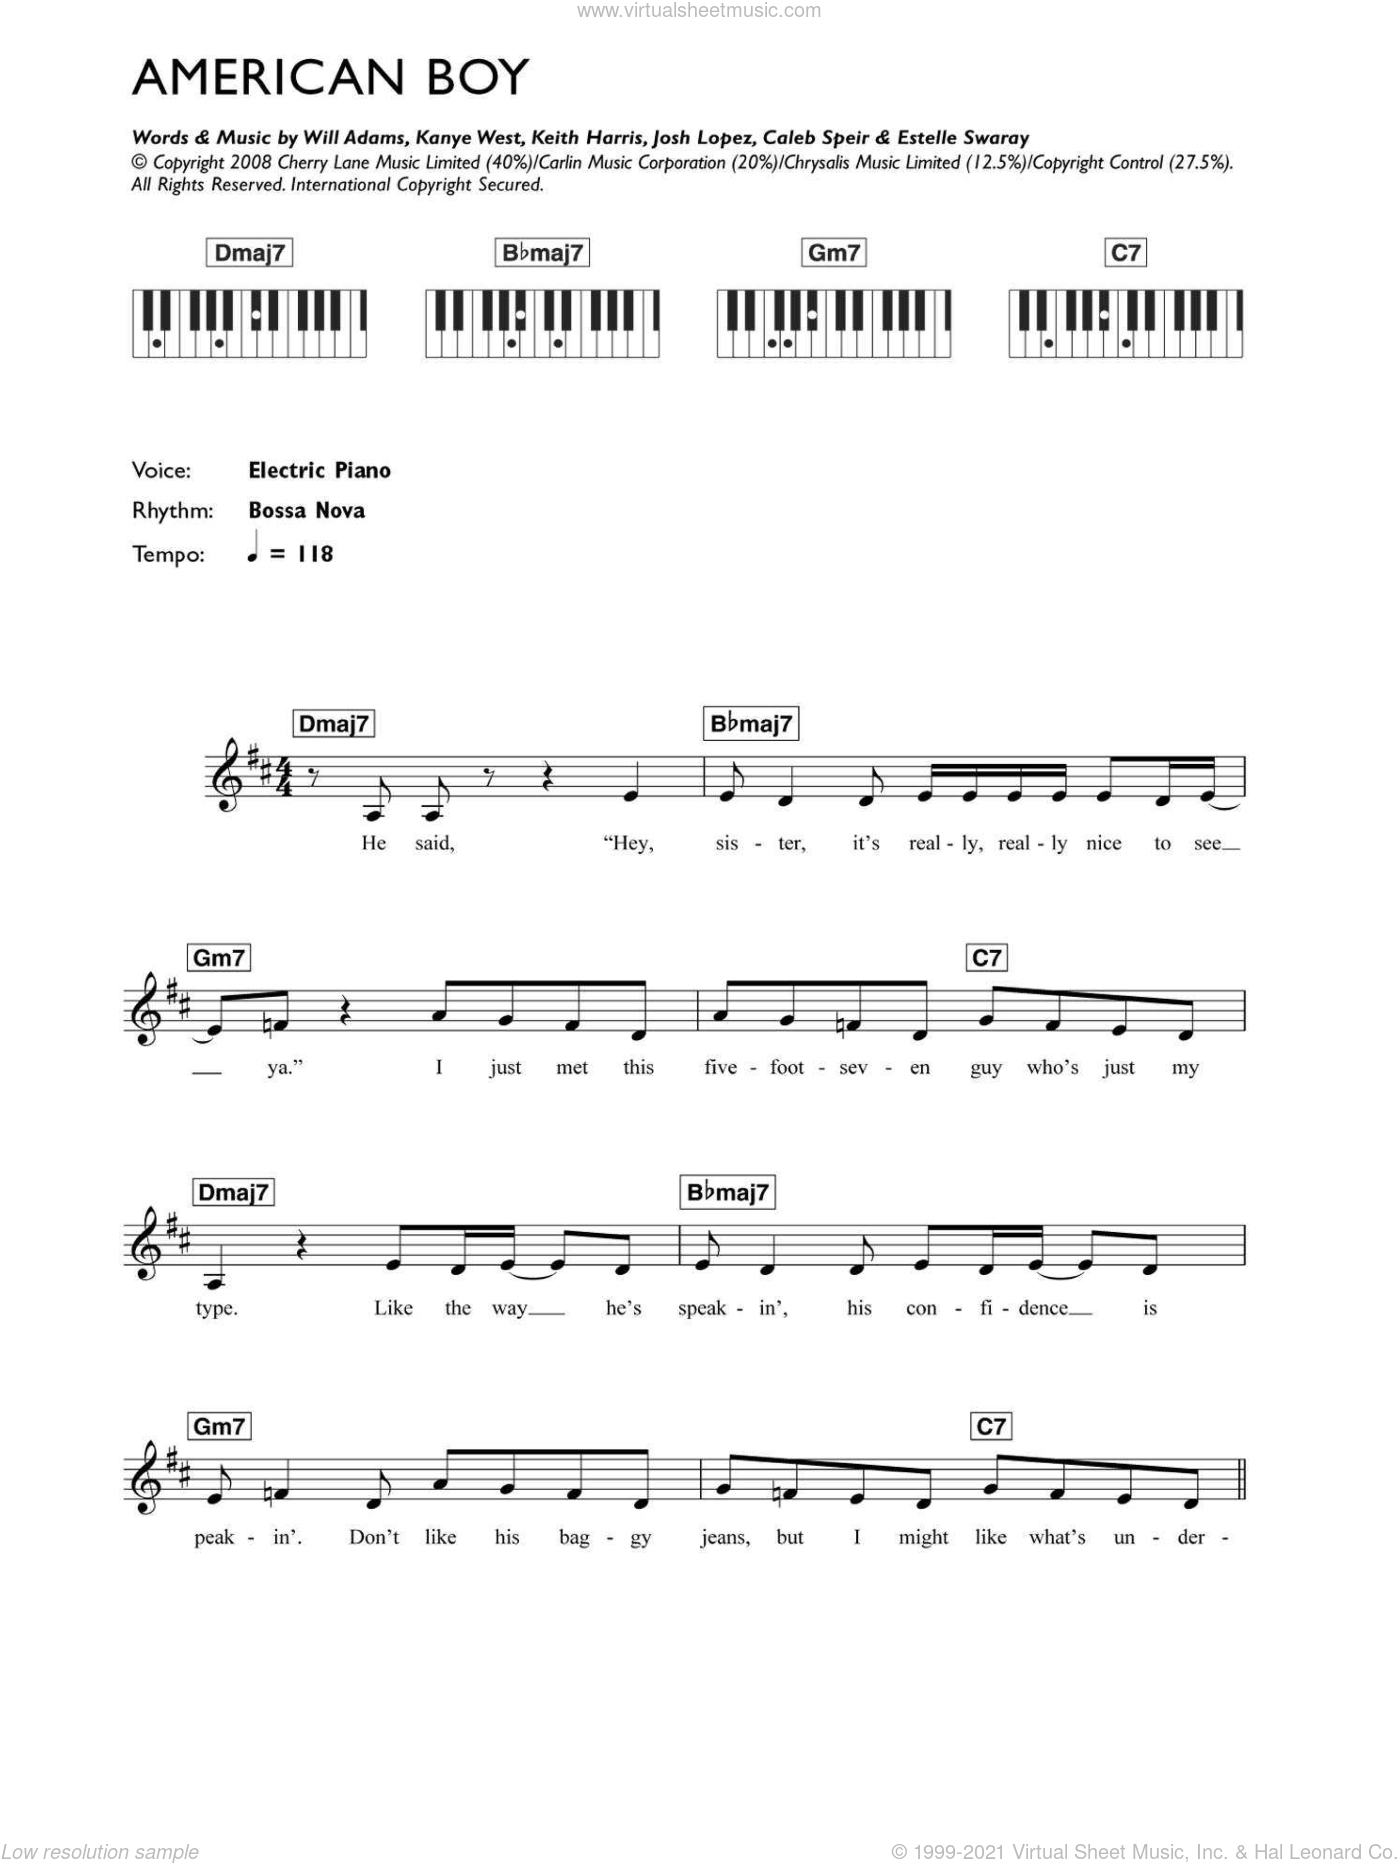 American Boy sheet music for voice and other instruments (fake book) by Estelle, Caleb Speir, Estelle Swaray, Josh Lopez, Kanye West, Keith Harris and Will Adams, intermediate skill level